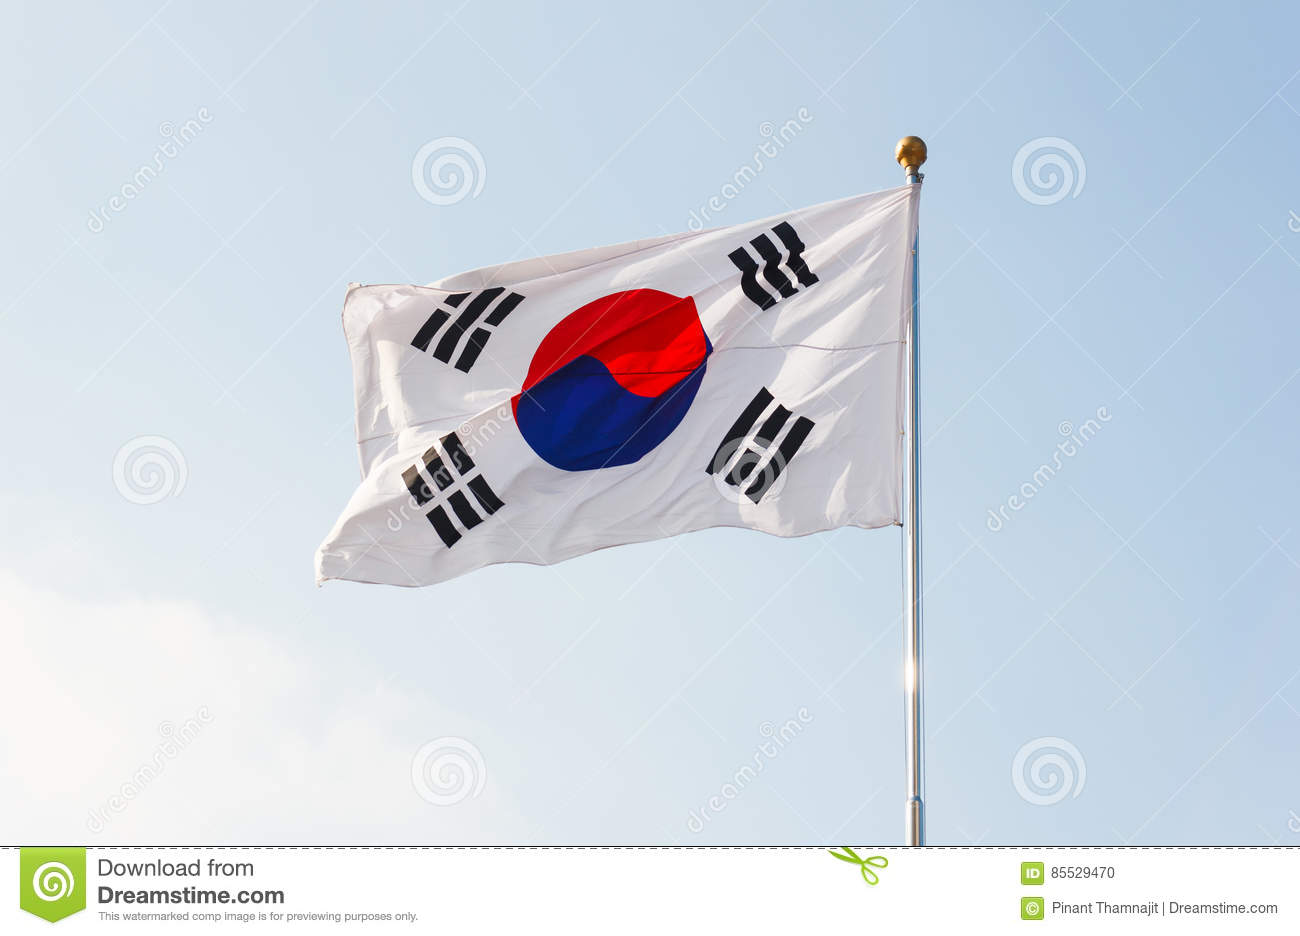 South Korea flag waving with blue sky in background.